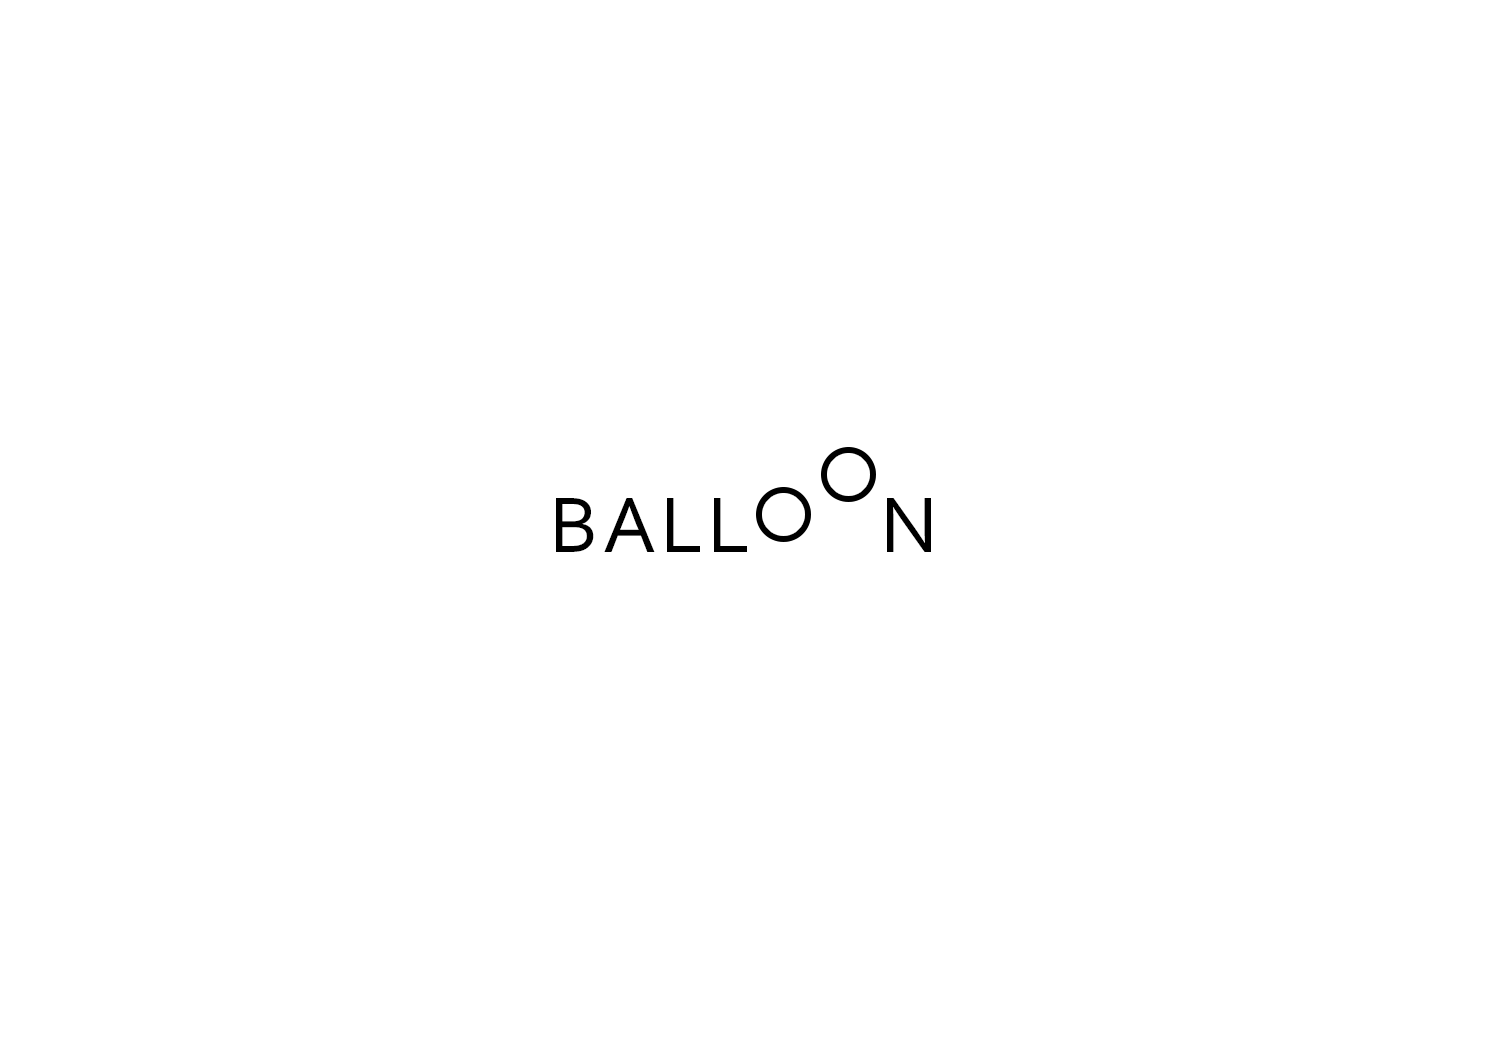 Balloon Text Logo Design Inspiration